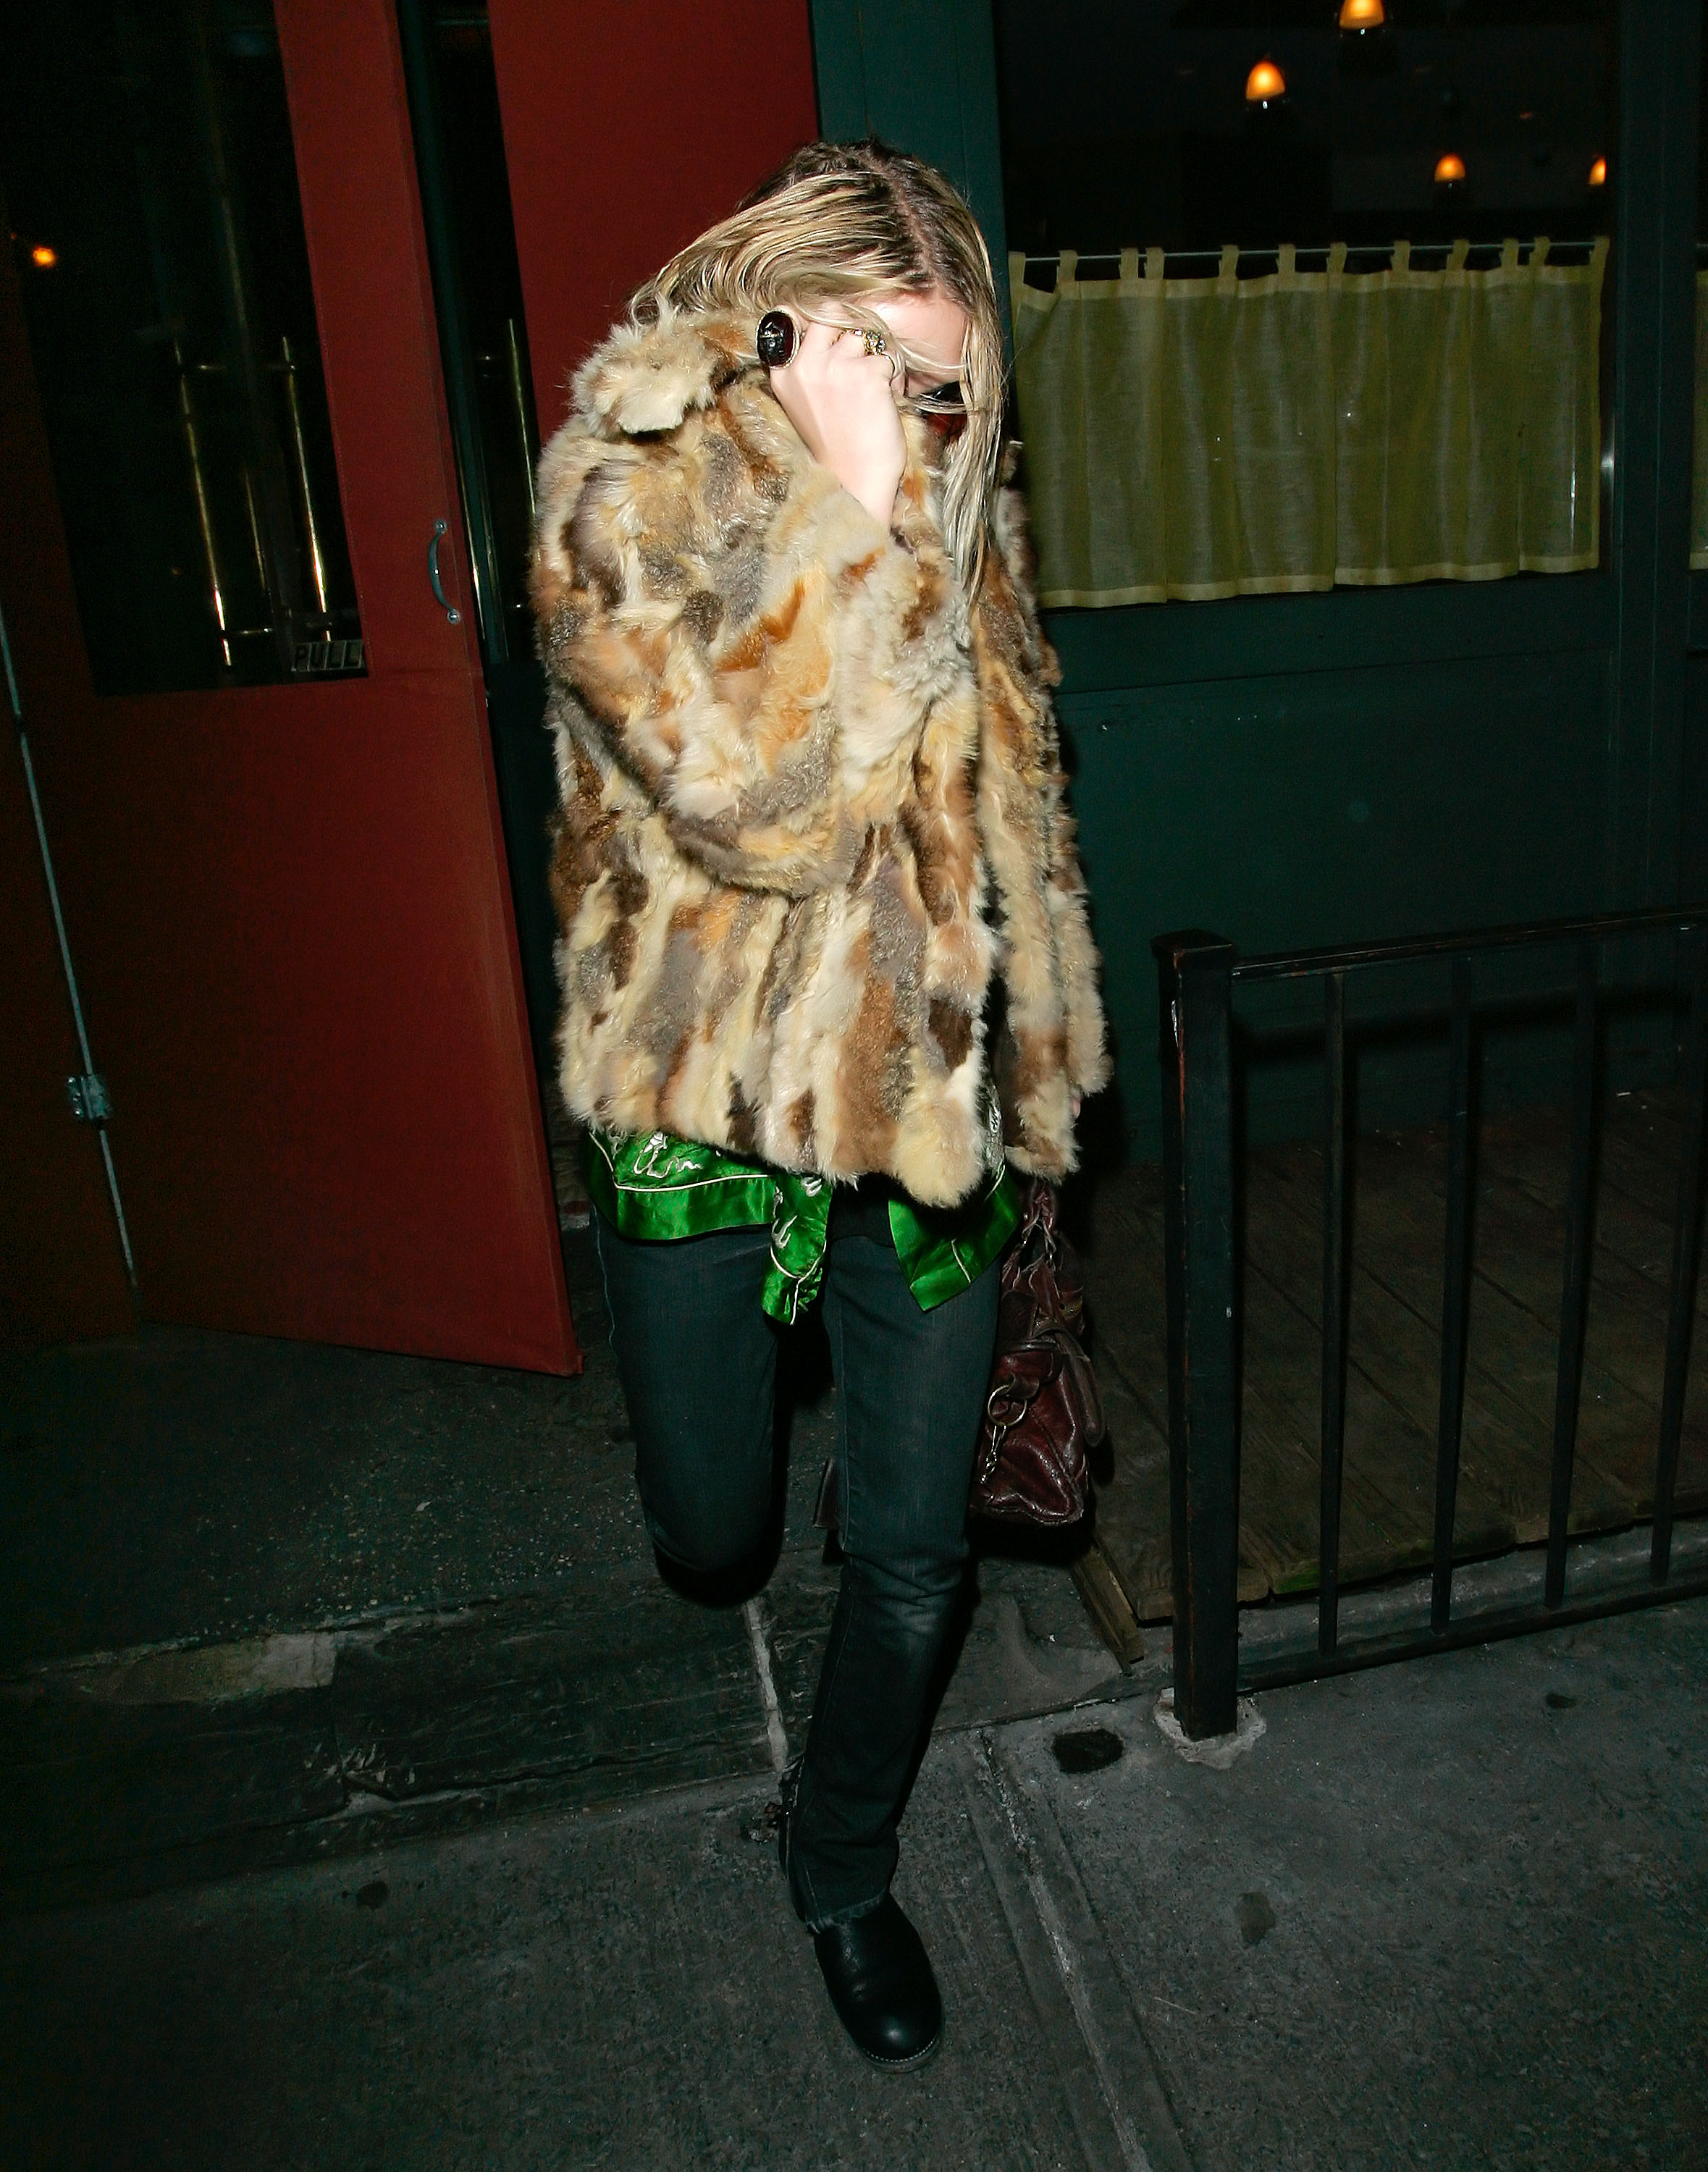 29787_celeb-city.eu_Mary_Kate_Olsen_out_and_about_for_a_late_lunch_in_the_West_Village_05.01.2008_05_122_532lo.jpg